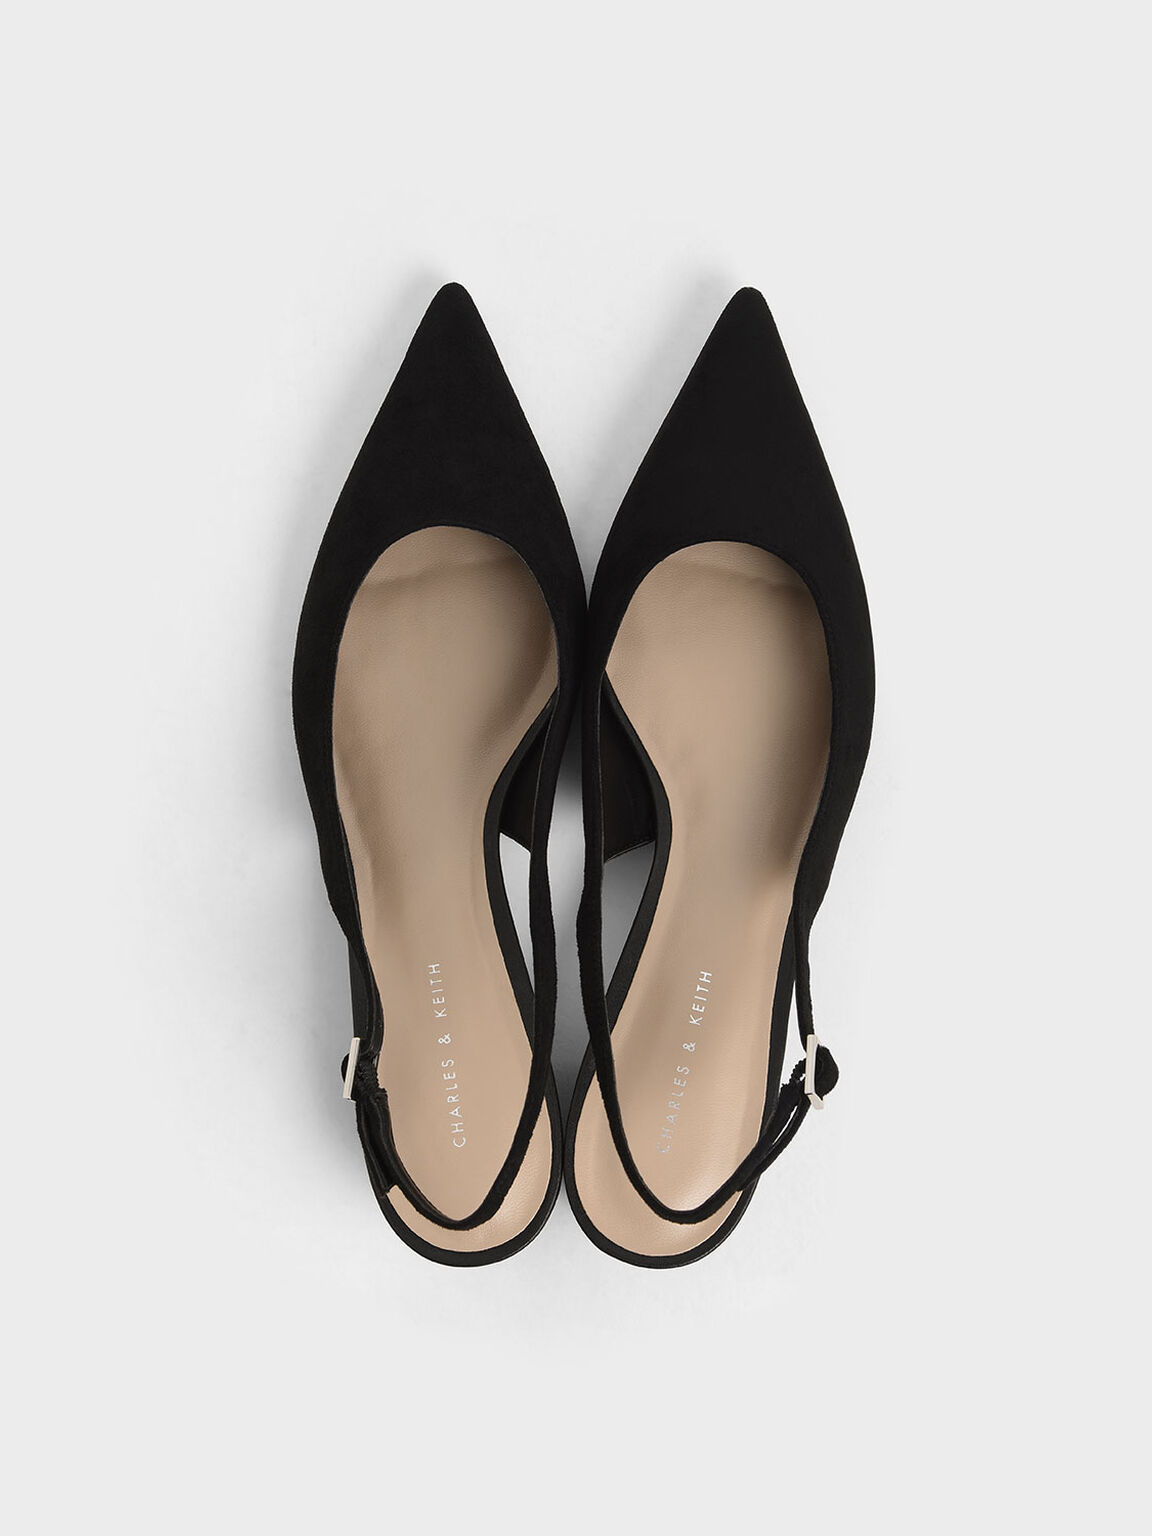 Textured Pointed Toe Slingback Heels, Black, hi-res